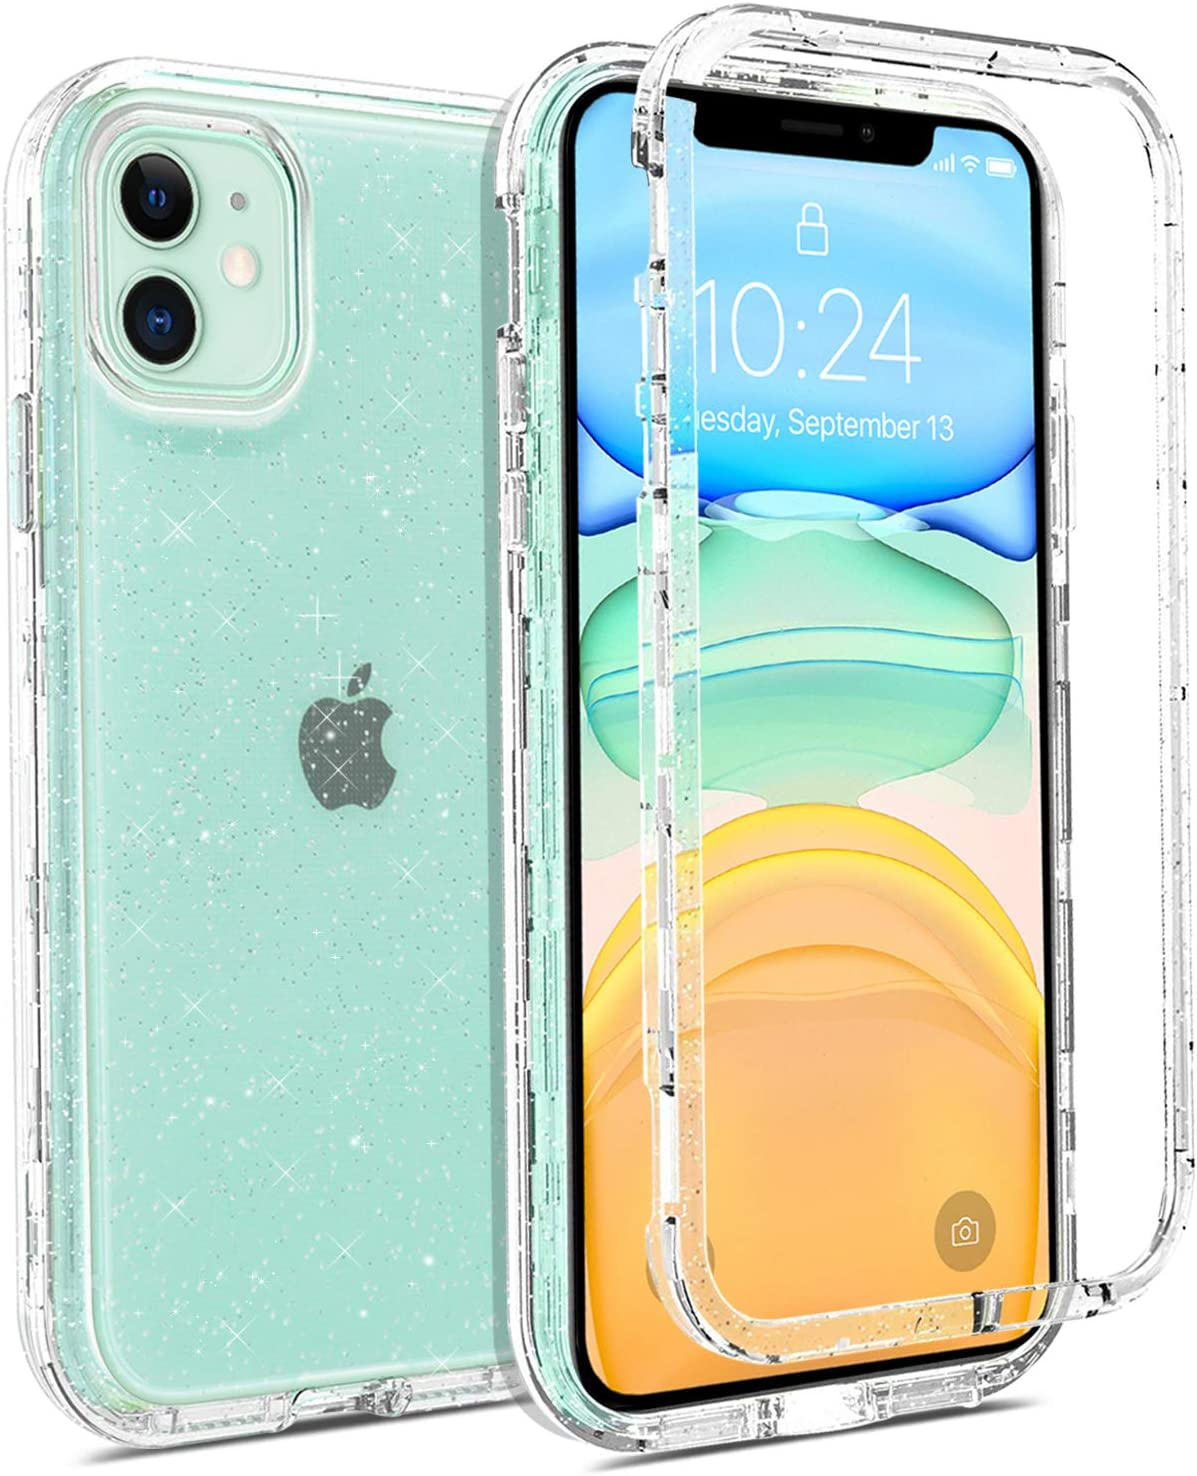 Coolwee Crystal Glitter Full Protective Case for iPhone 11 Heavy Duty Hybrid 3 in 1 Rugged Shockproof Women Girls Transparent for Apple iPhone 11 6.1 inch Shiny Clear Bling Sparkle